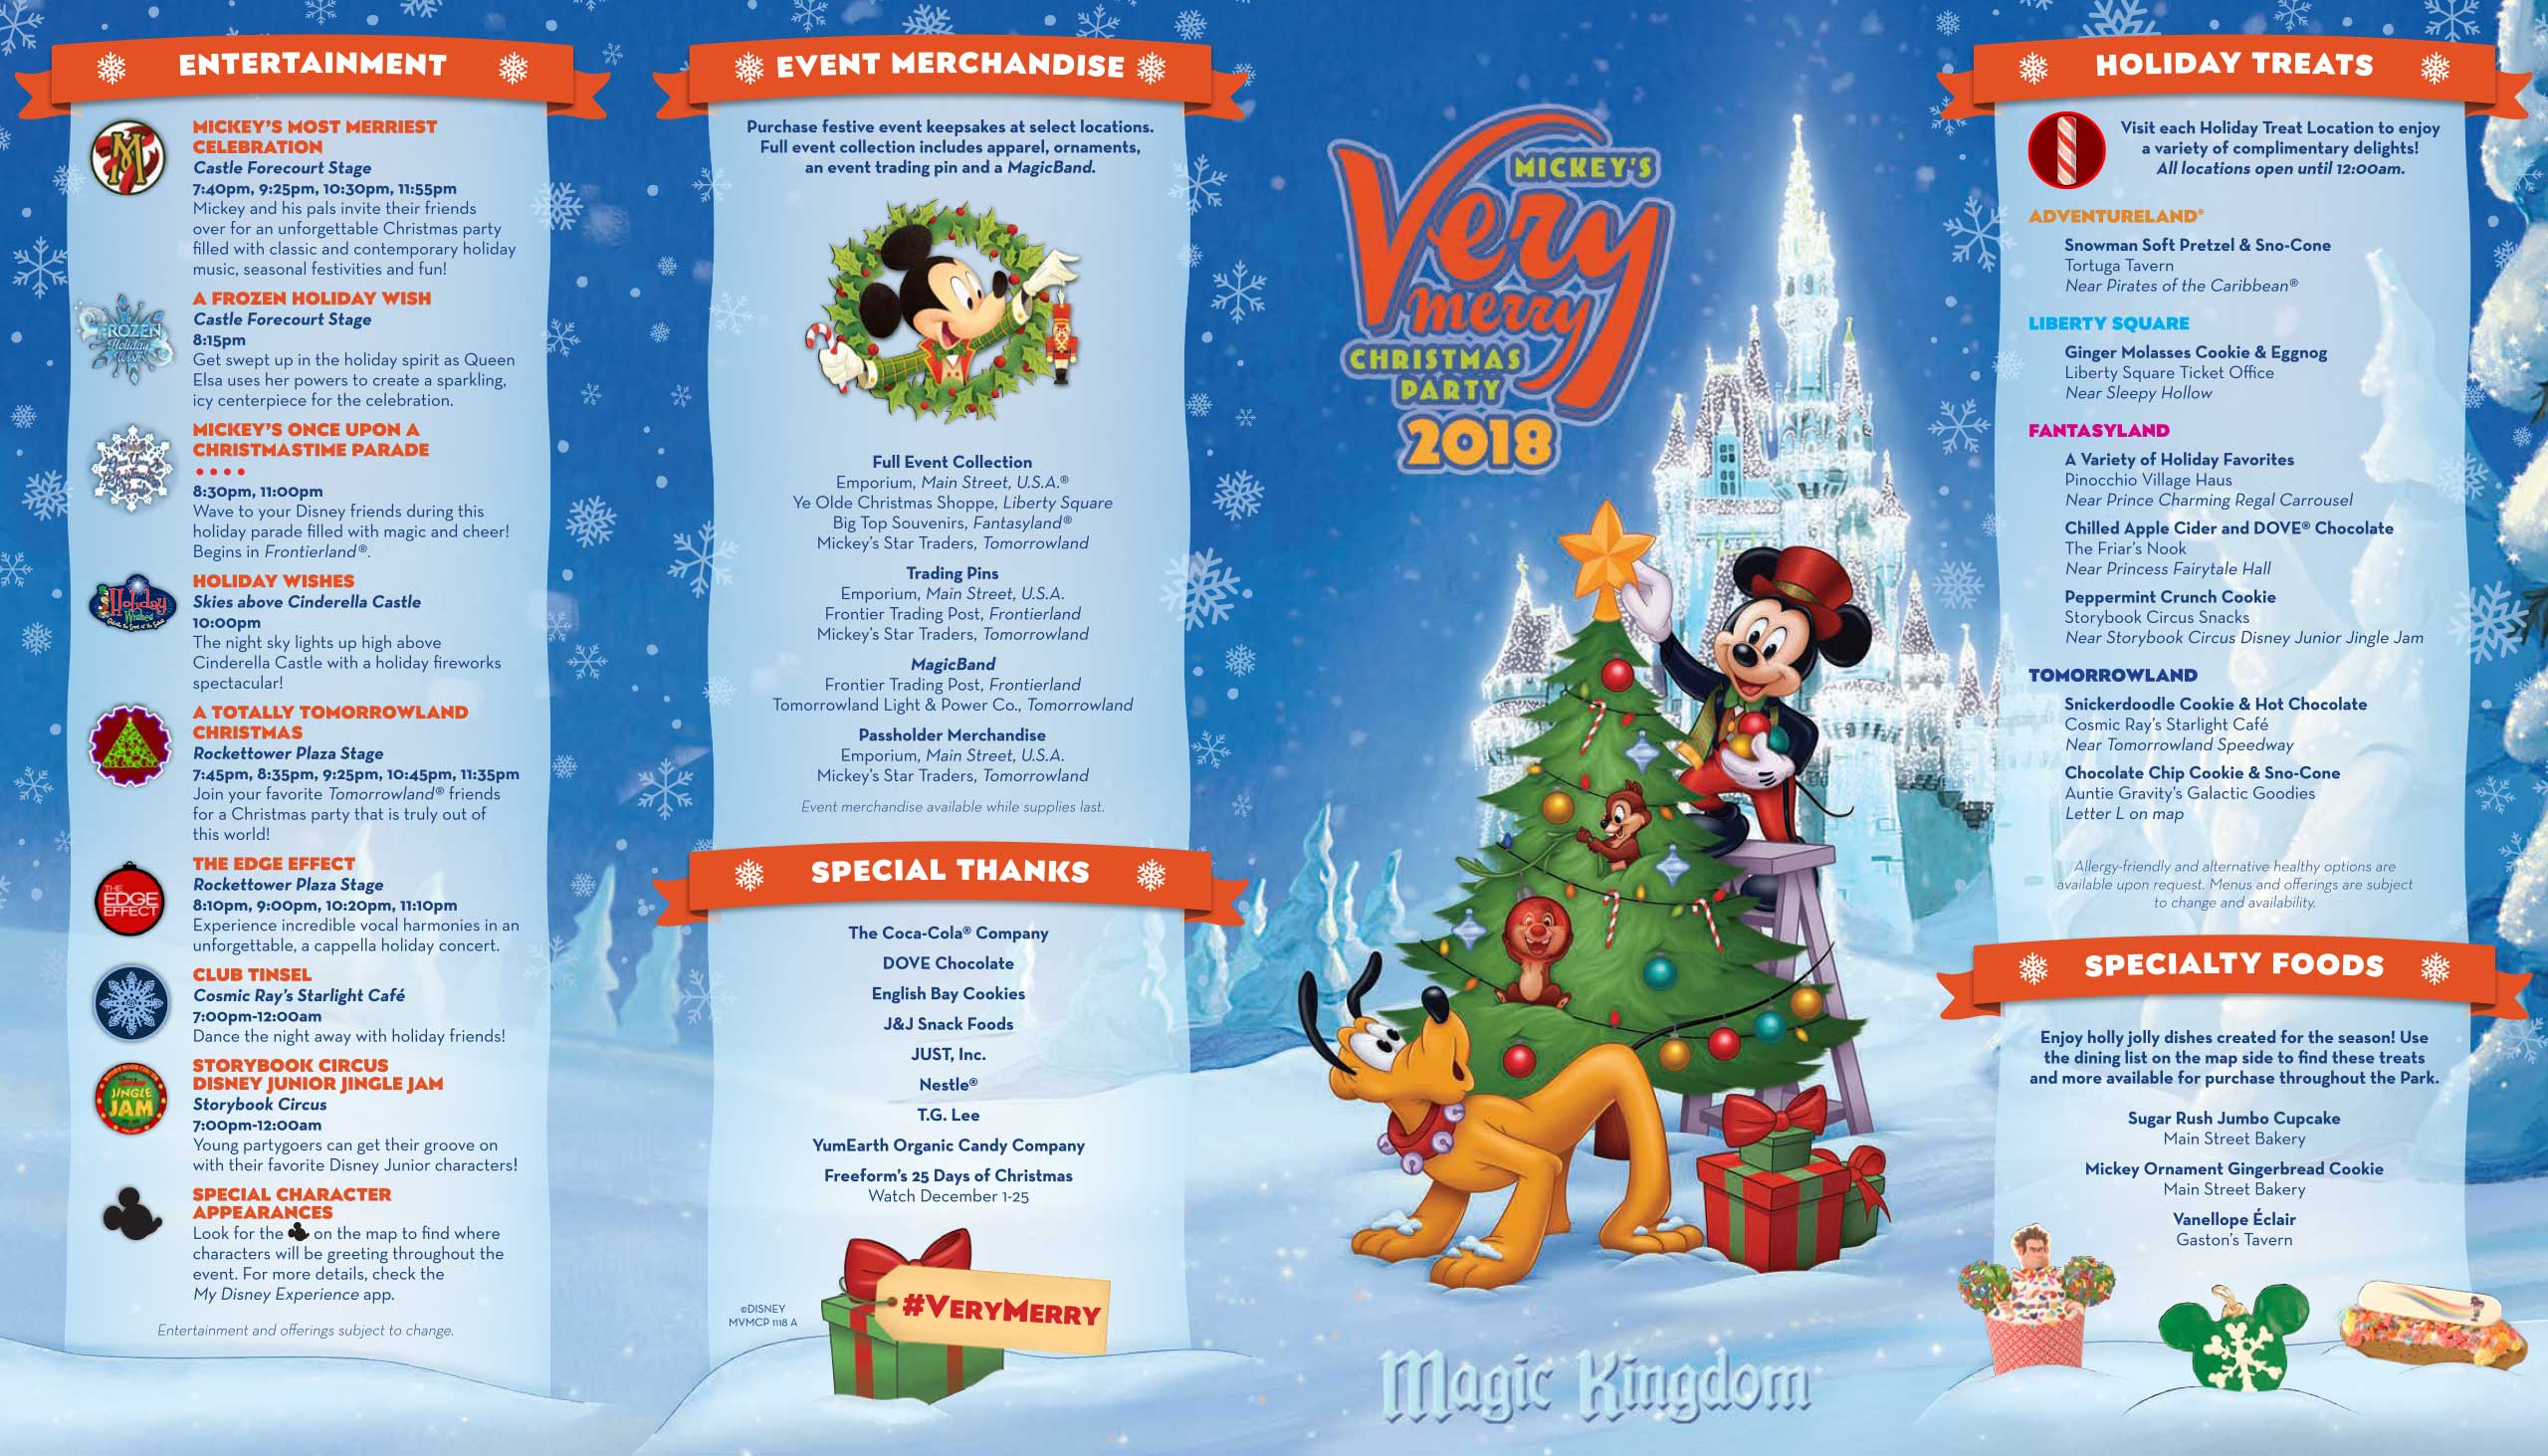 mickeys very merry christmas party 2018 guide map - Mickey Very Merry Christmas Party